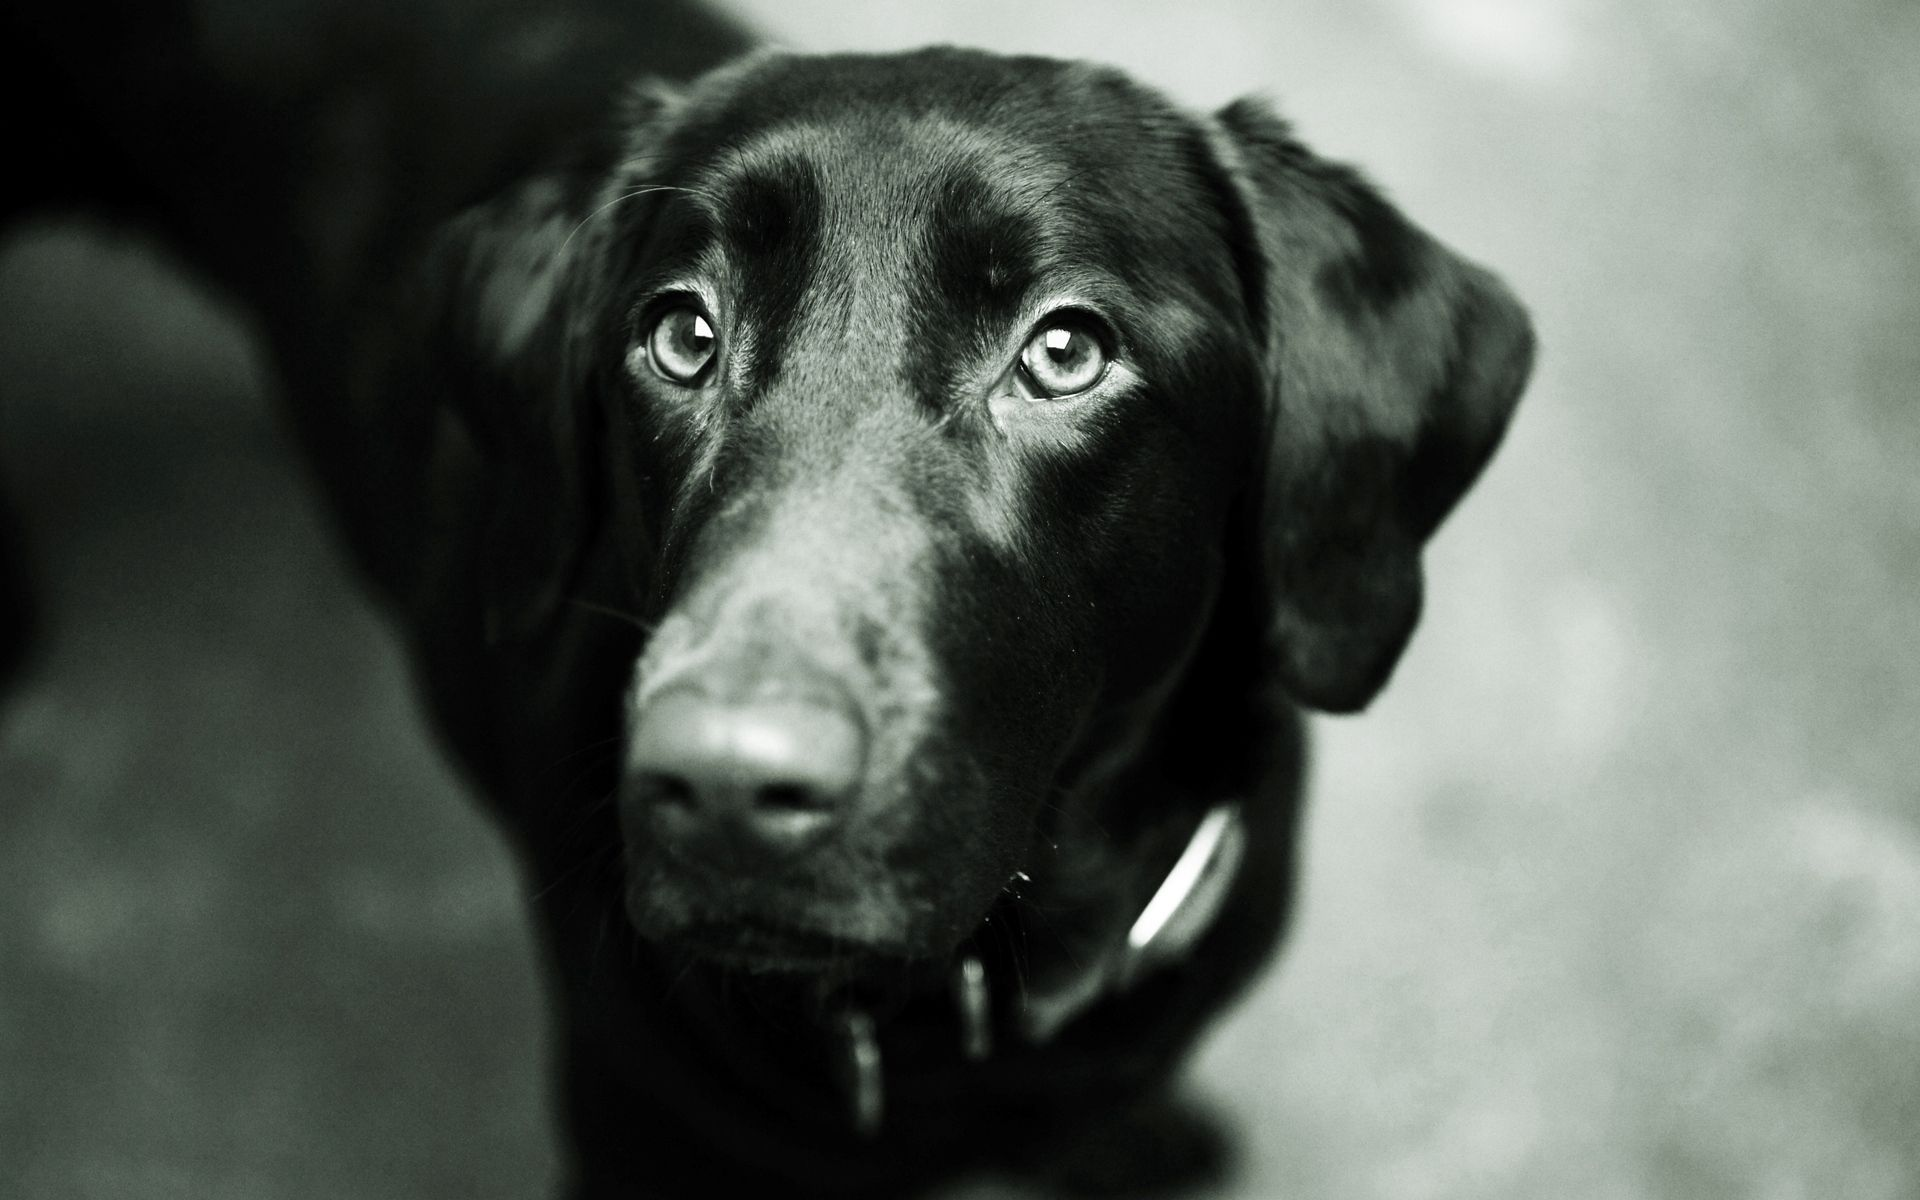 139428 download wallpaper Animals, Dog, Muzzle, Nose, Ears, Bw, Chb screensavers and pictures for free